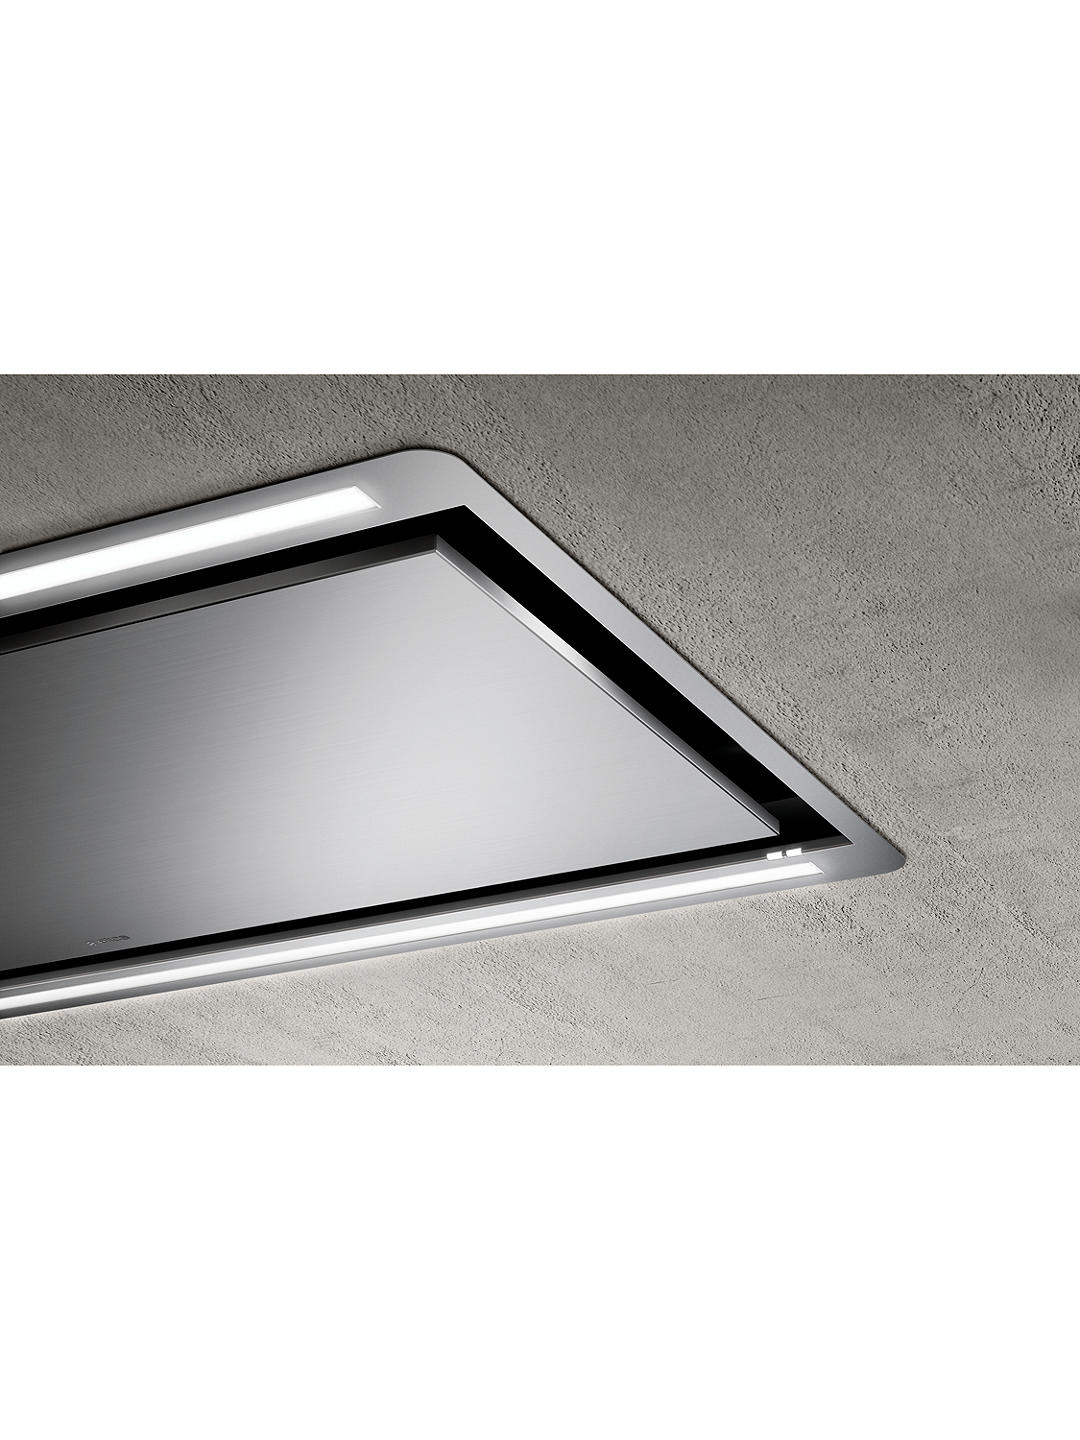 Buy Elica HILIGHT30-SS 100cm Ceiling Cooker Hood, A Energy Rating, Stainless Steel Online at johnlewis.com